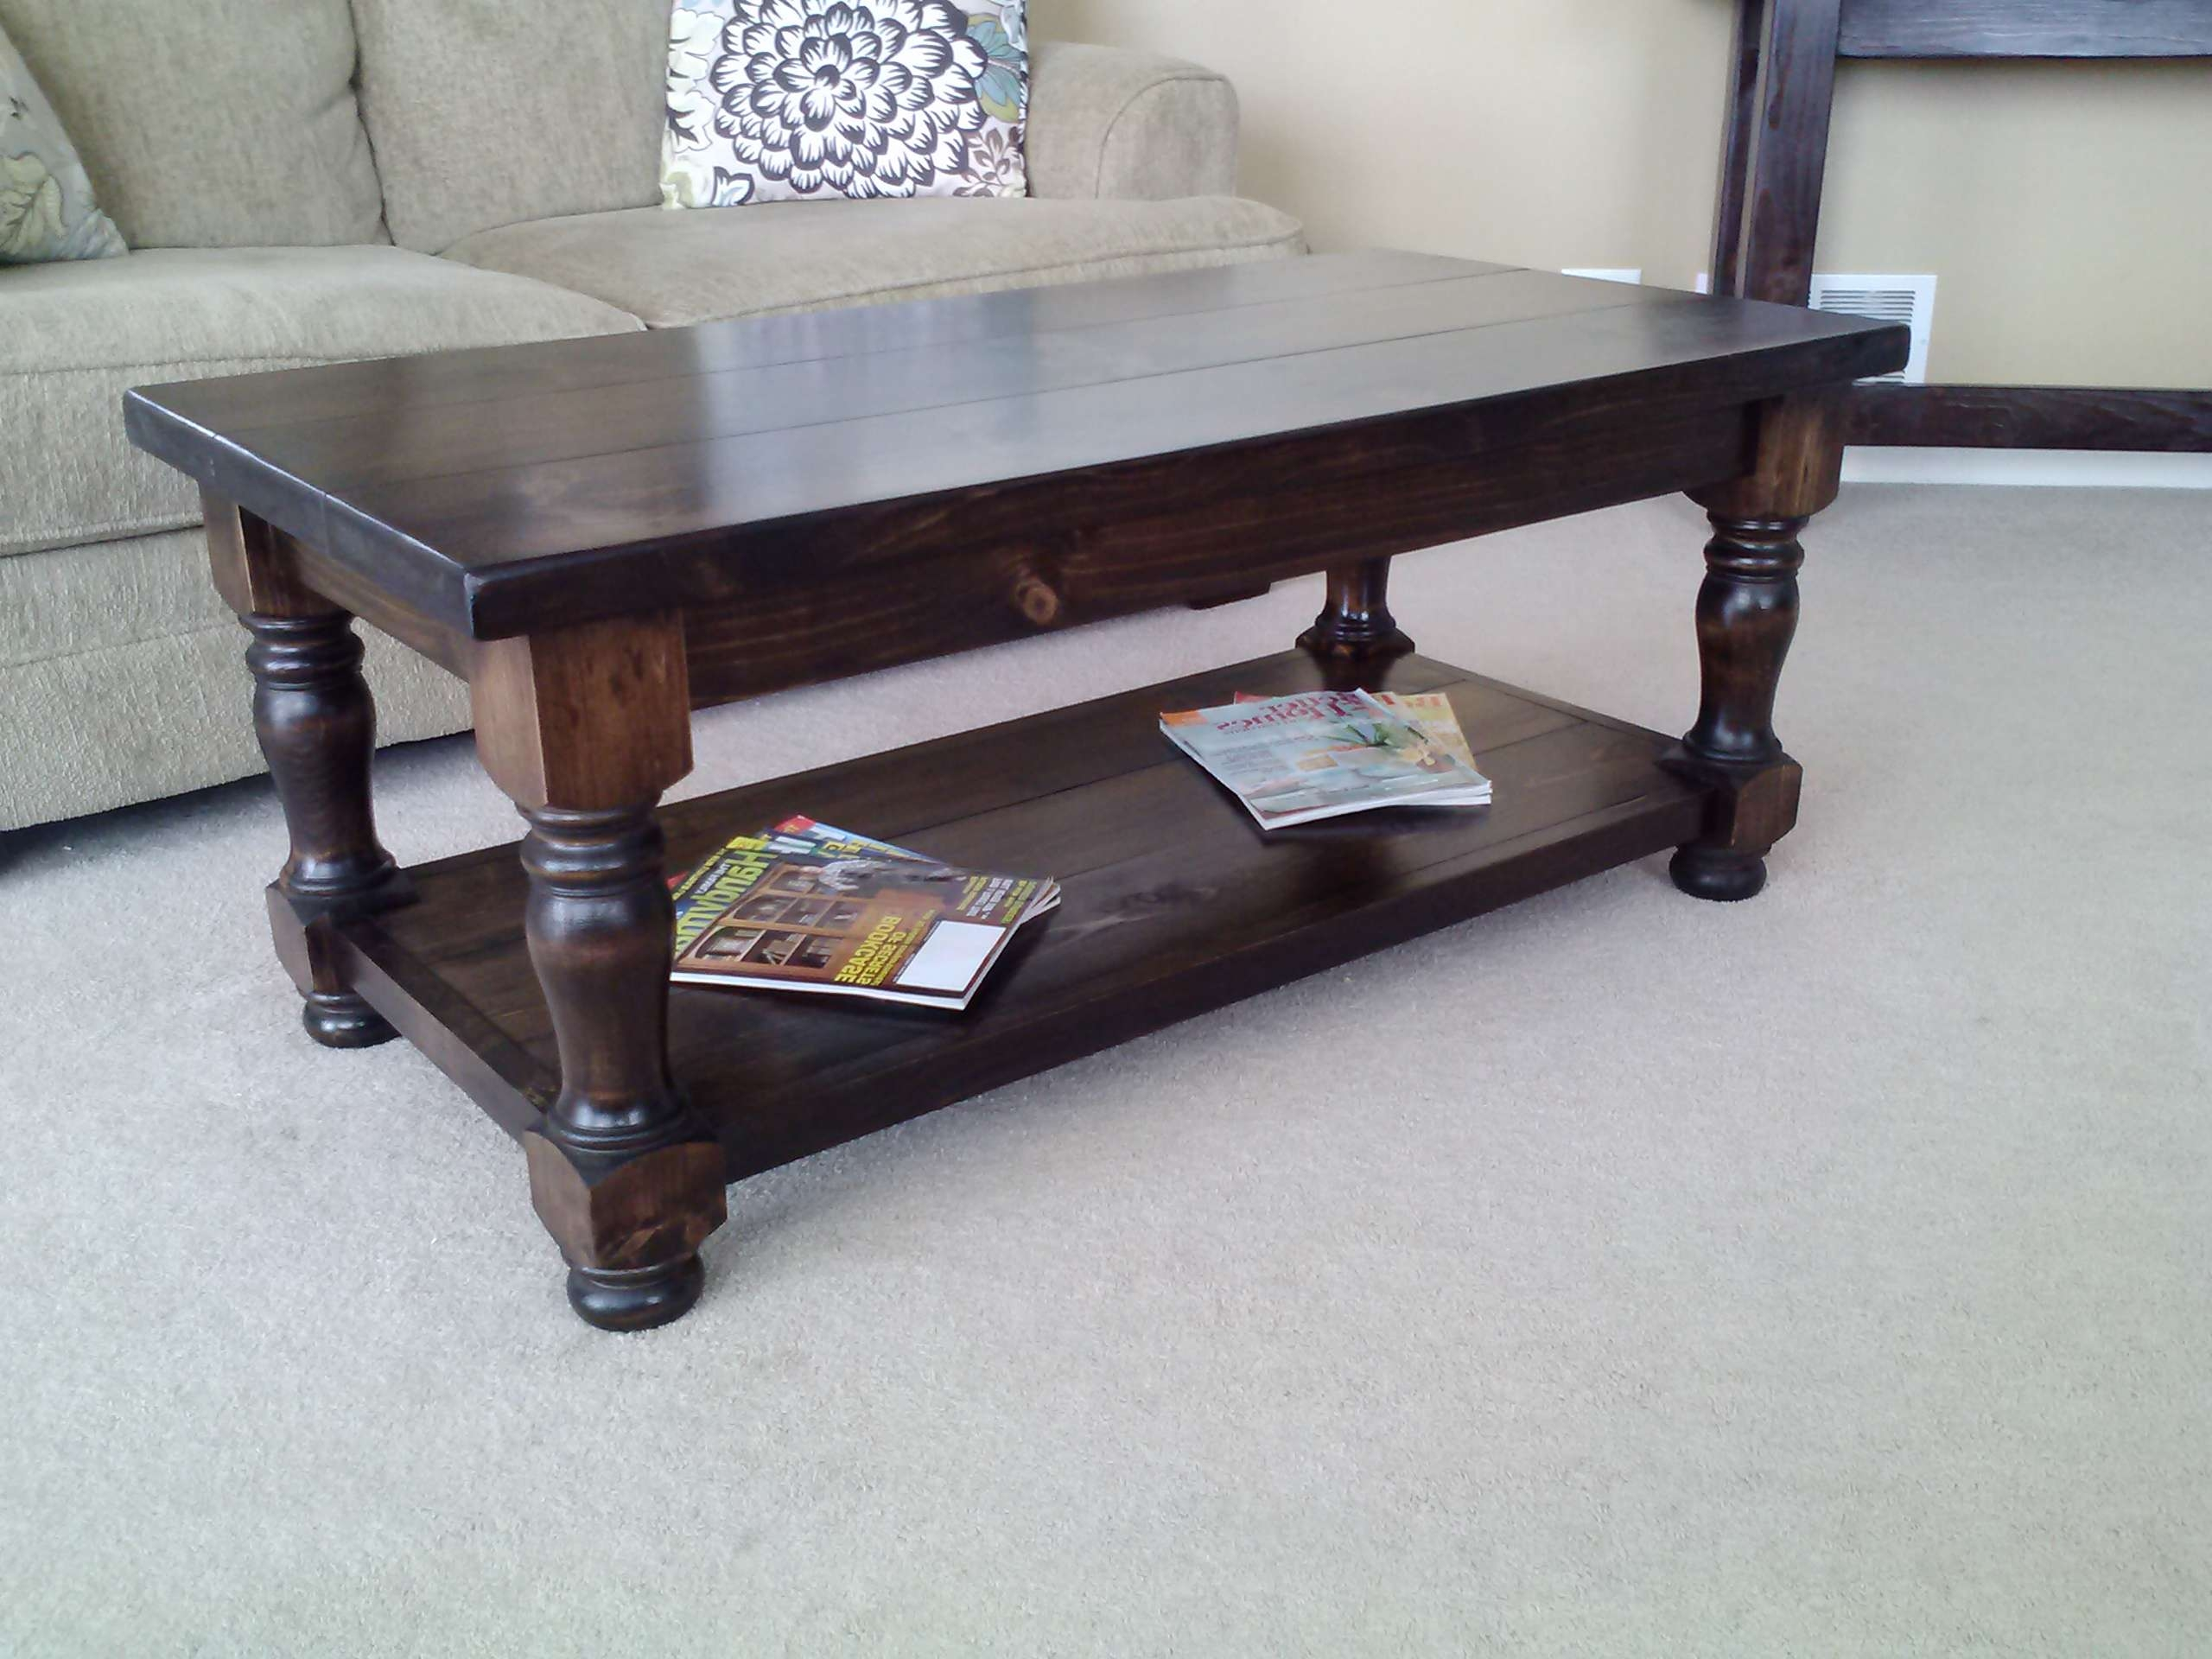 Latest Heritage Coffee Tables For Matching Coffee And End Tables Using The Heritage Table Legs (View 9 of 20)